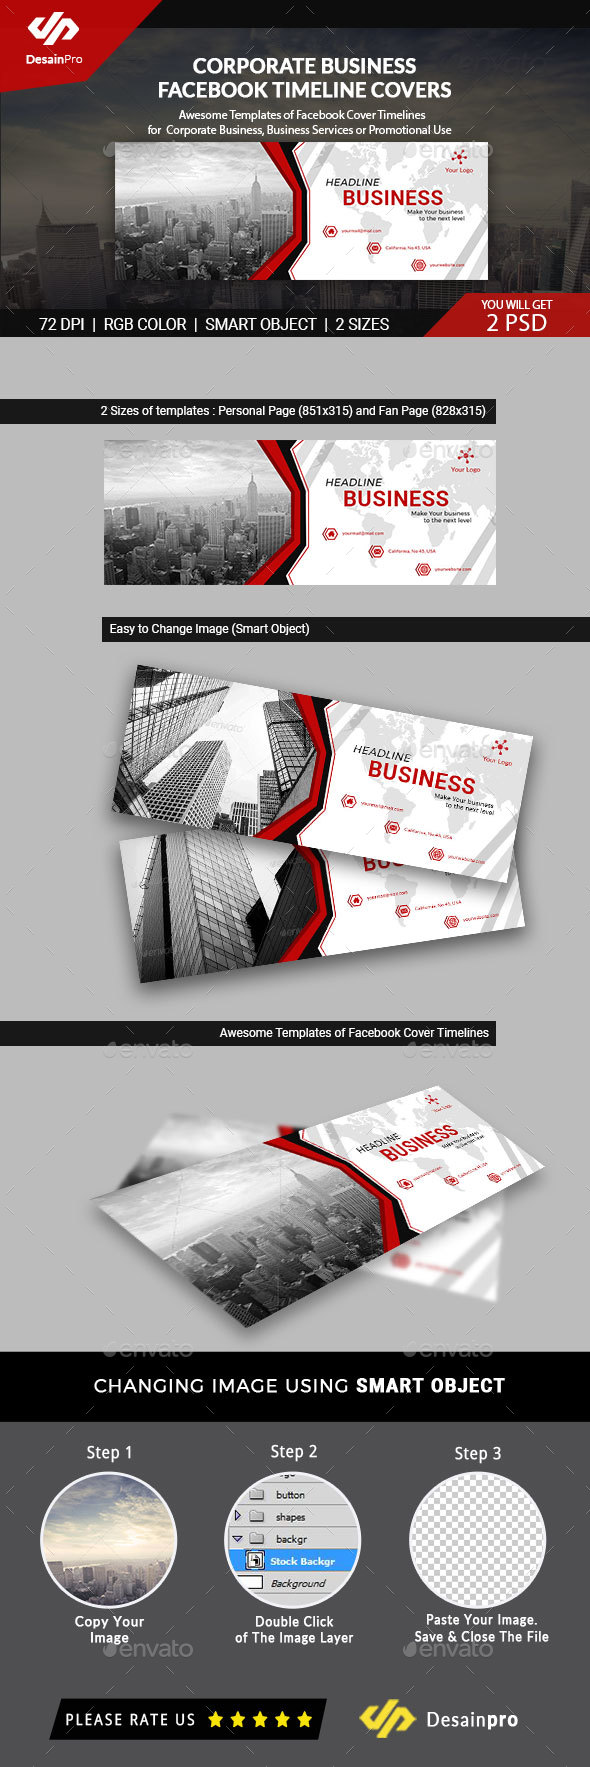 GraphicRiver Corporate Business FB Timeline Cover AR 21043785